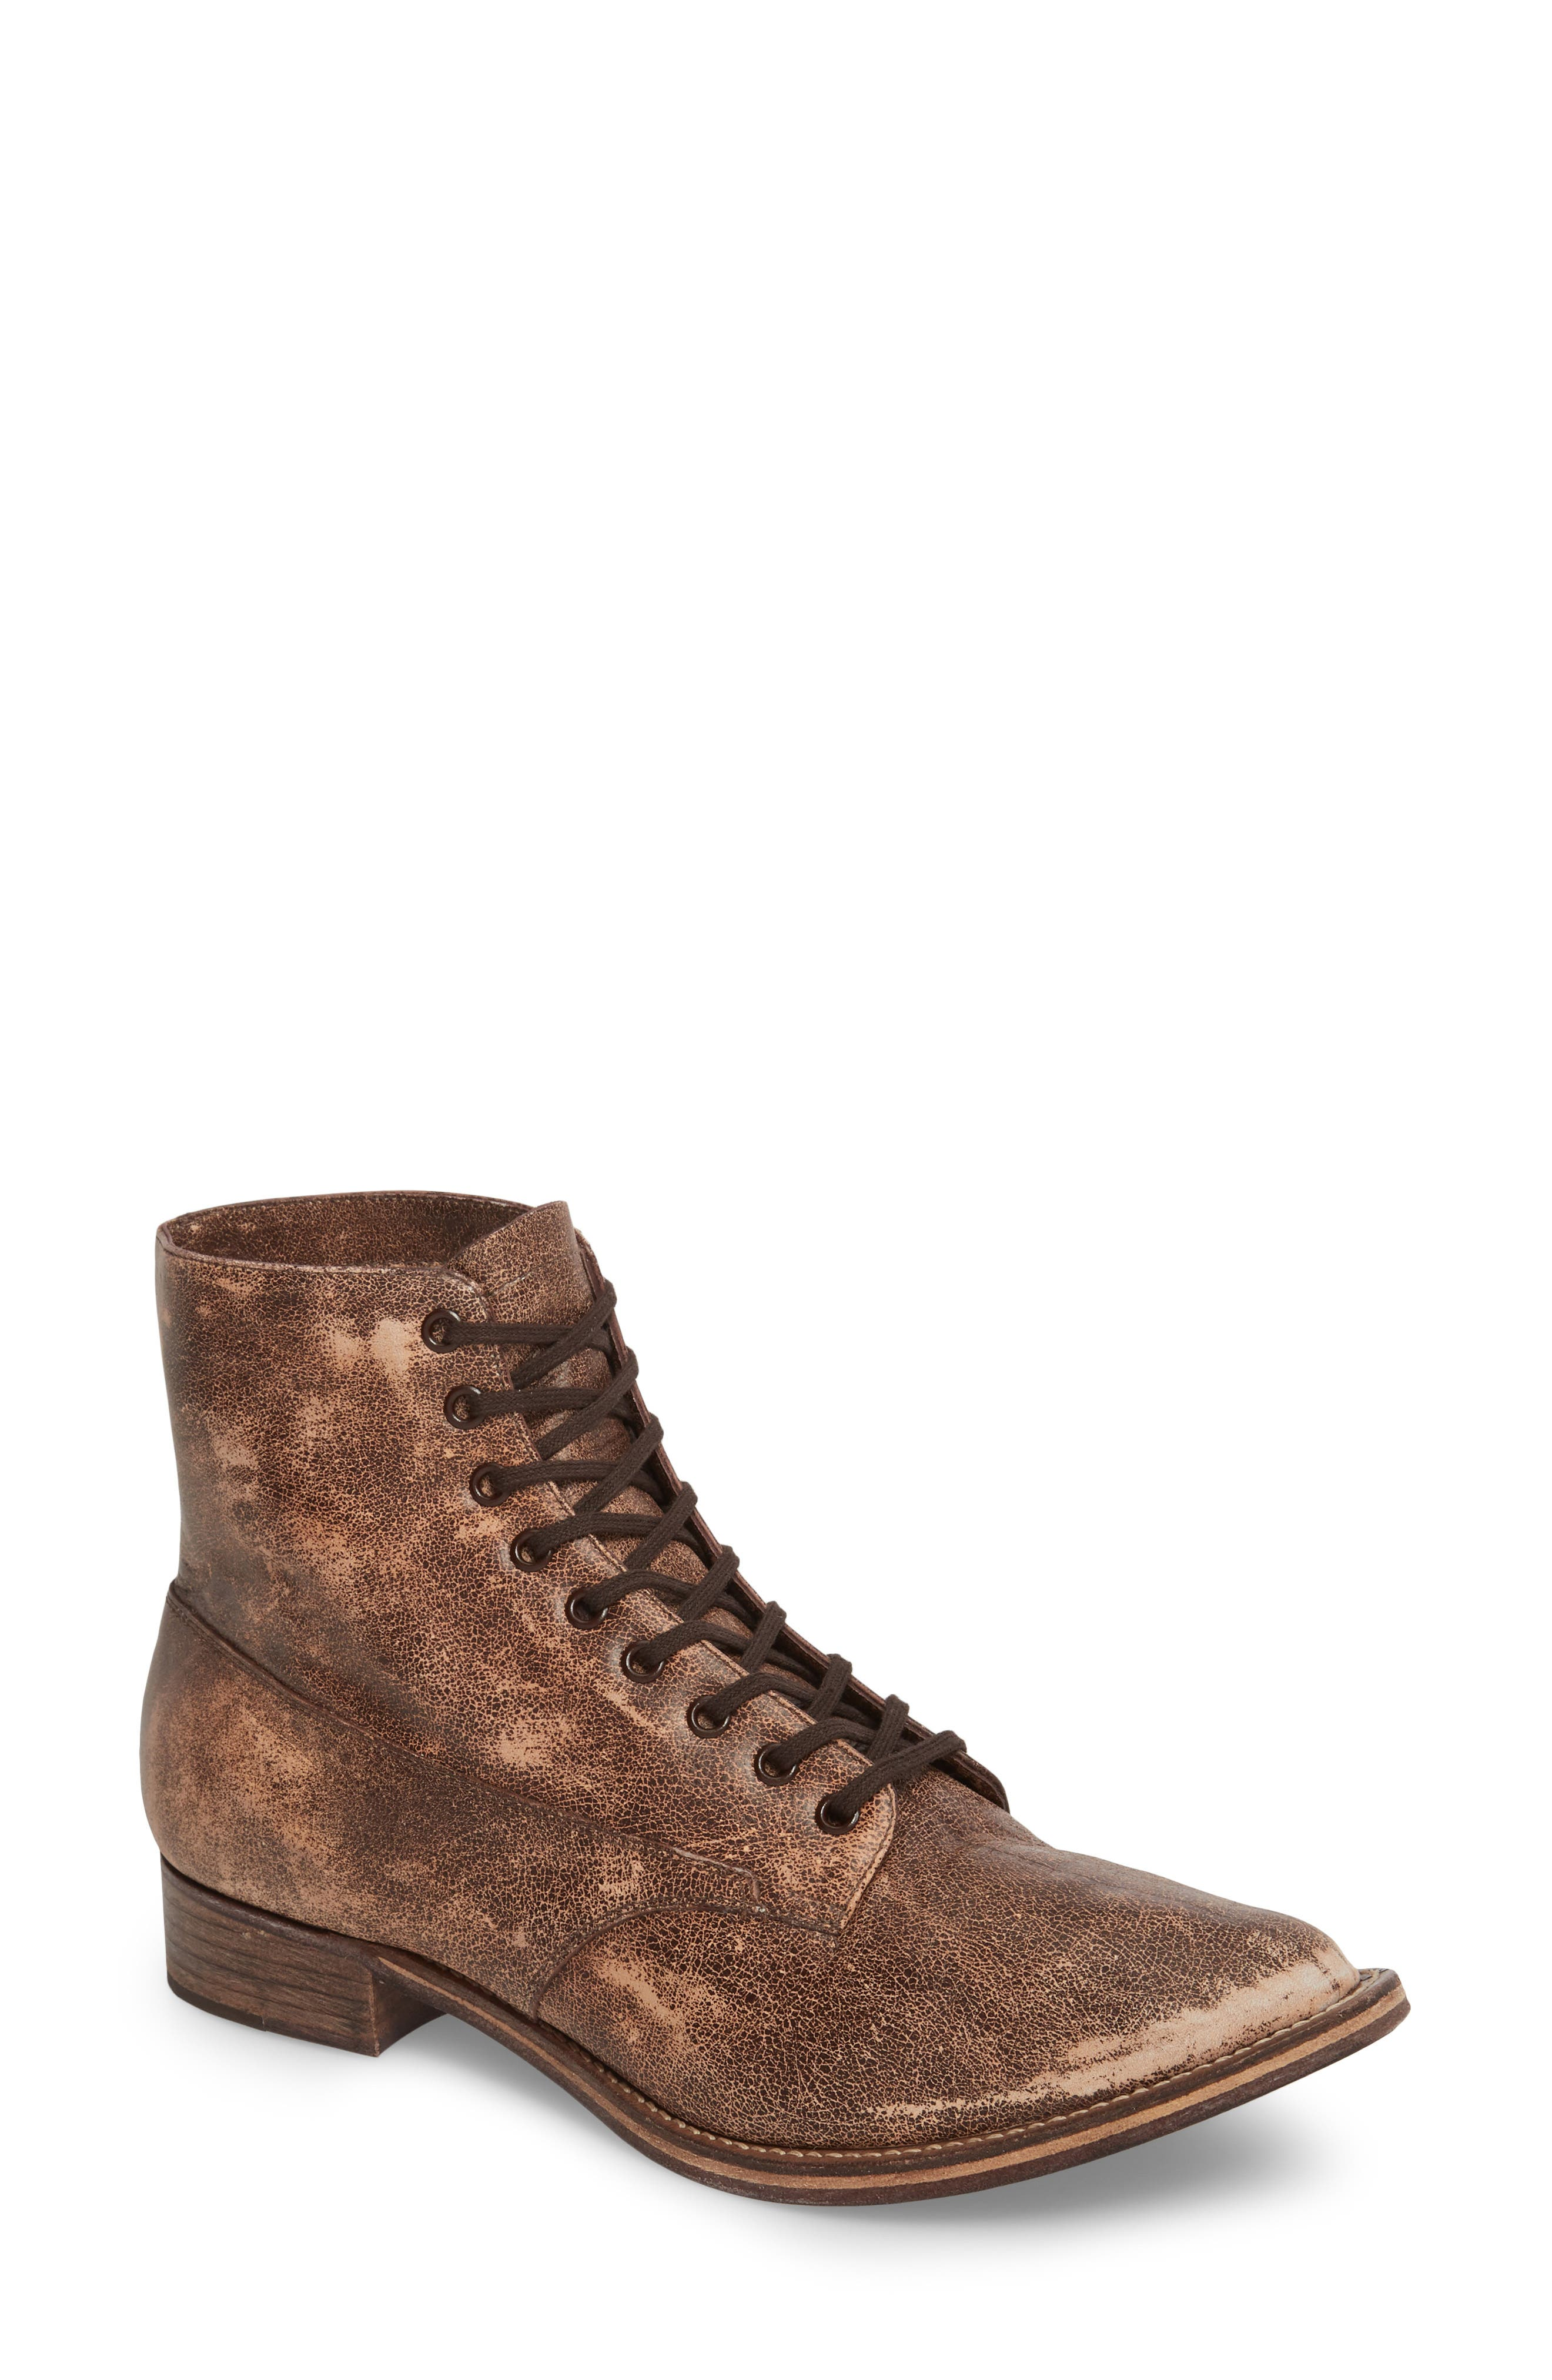 BOXCAR LACE-UP BOOT